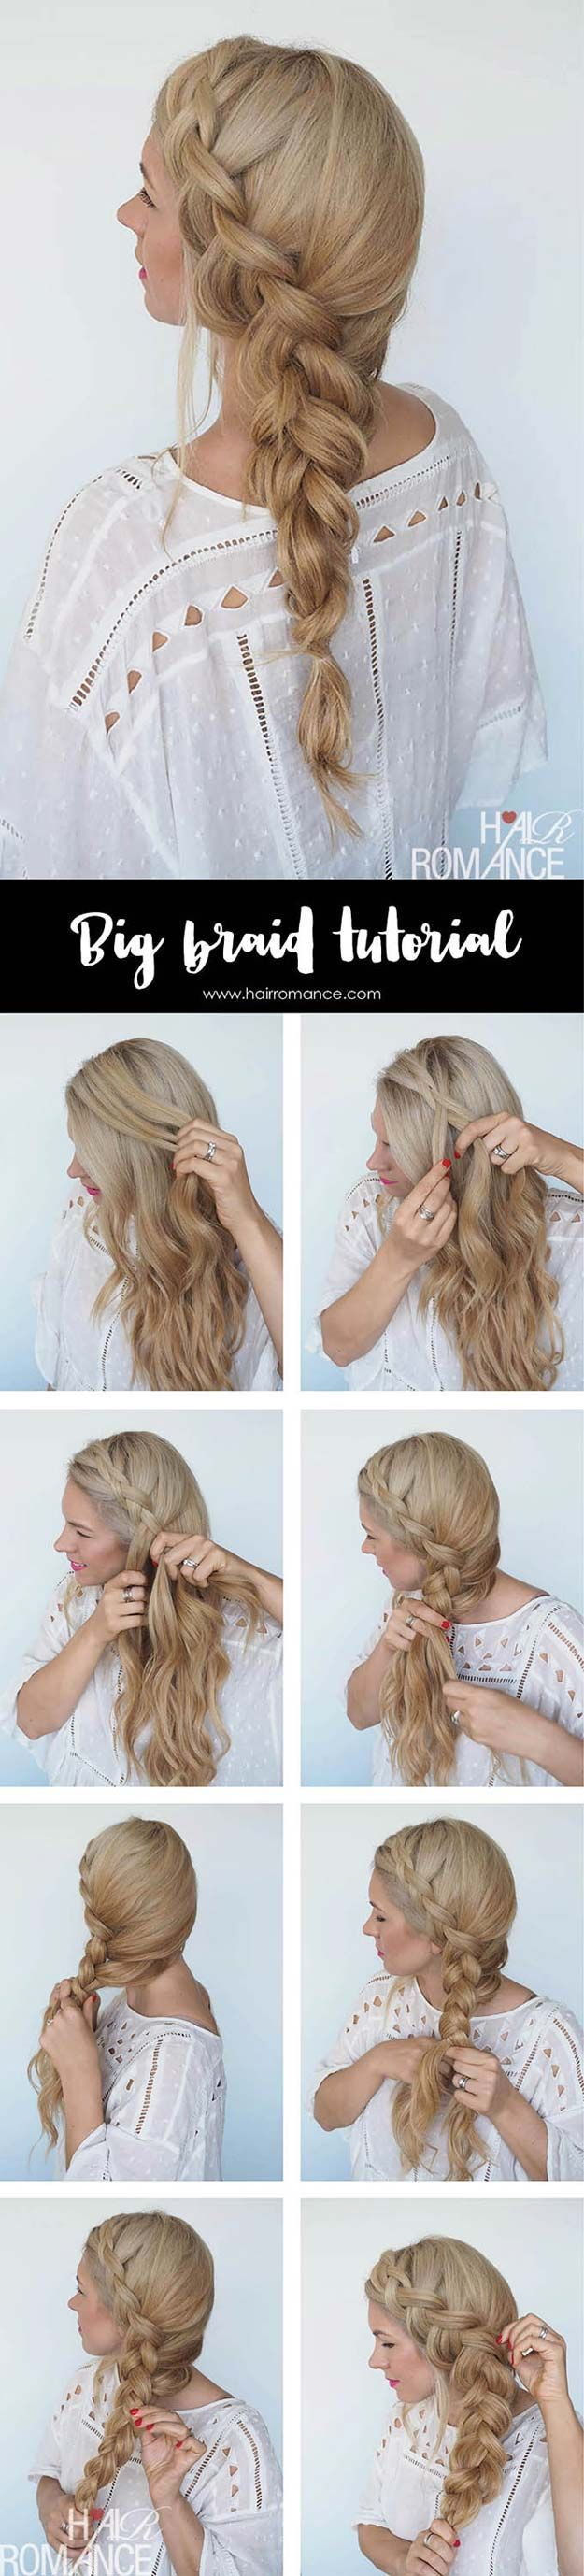 best Braids images on Pinterest Hair ideas Hairstyle ideas and